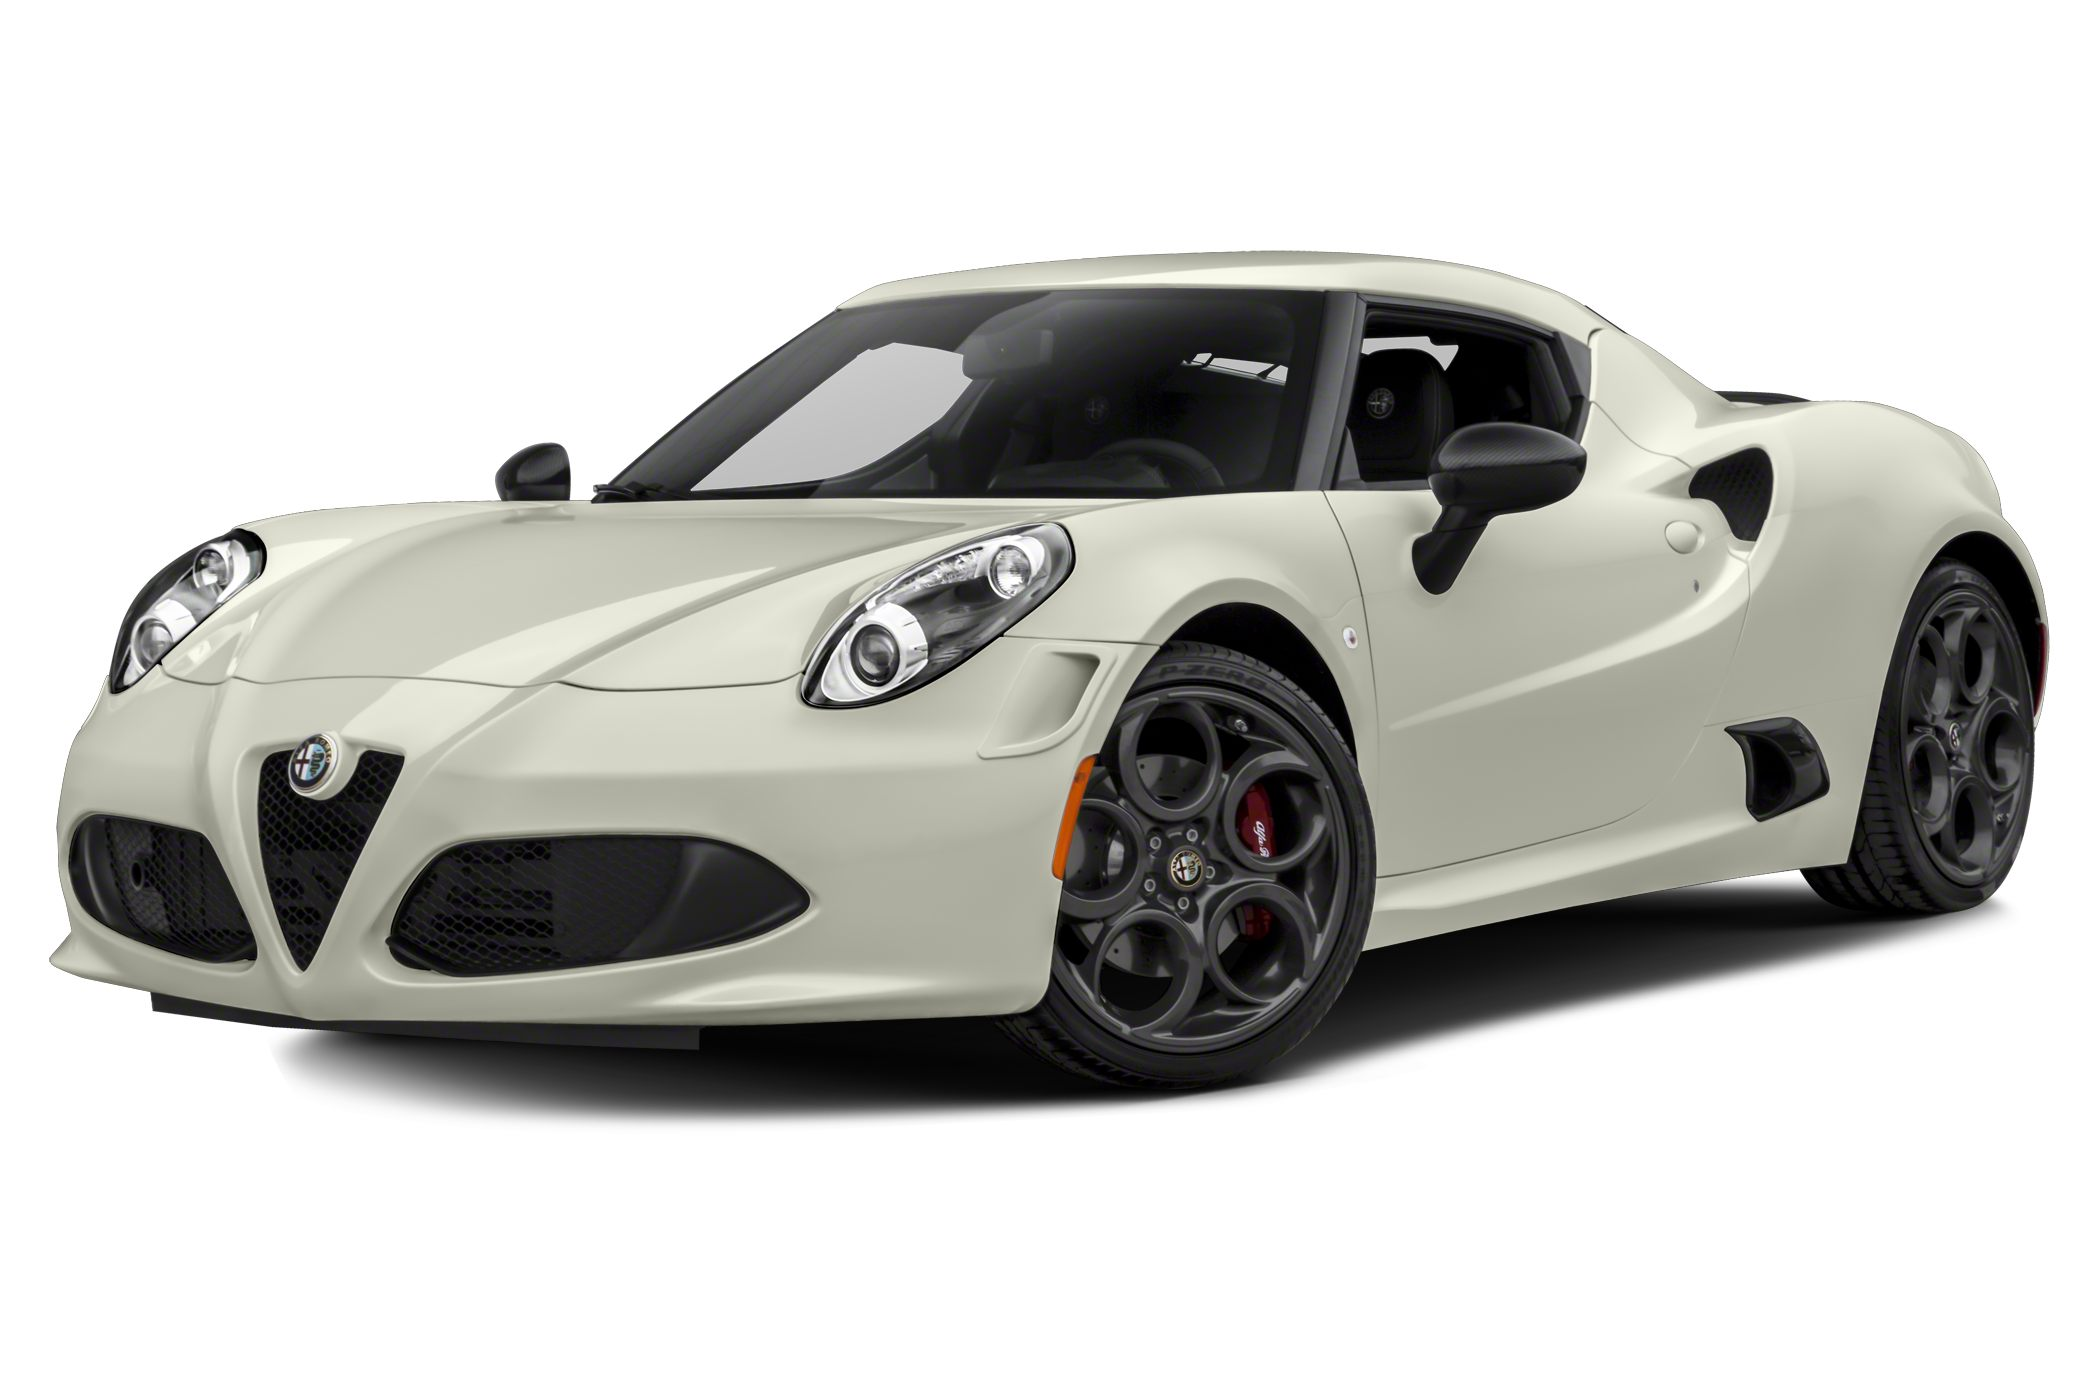 2015 Alfa Romeo 4C Launch Edition Coupe for sale in Benton for $72,195 with 0 miles